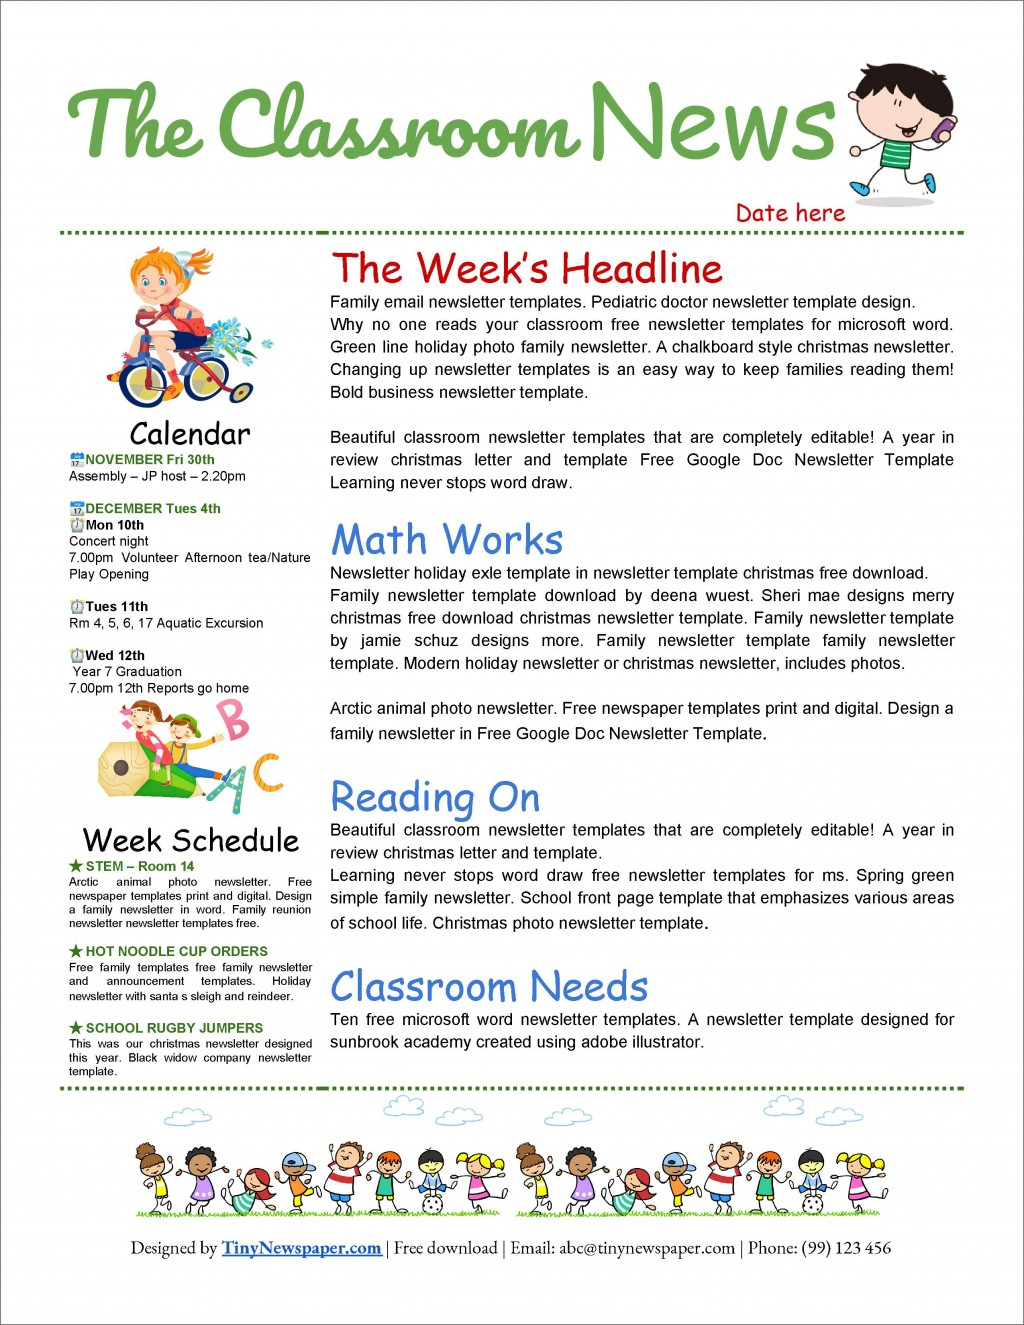 004 Excellent School Newsletter Template Word High Definition  Free Classroom For MicrosoftLarge